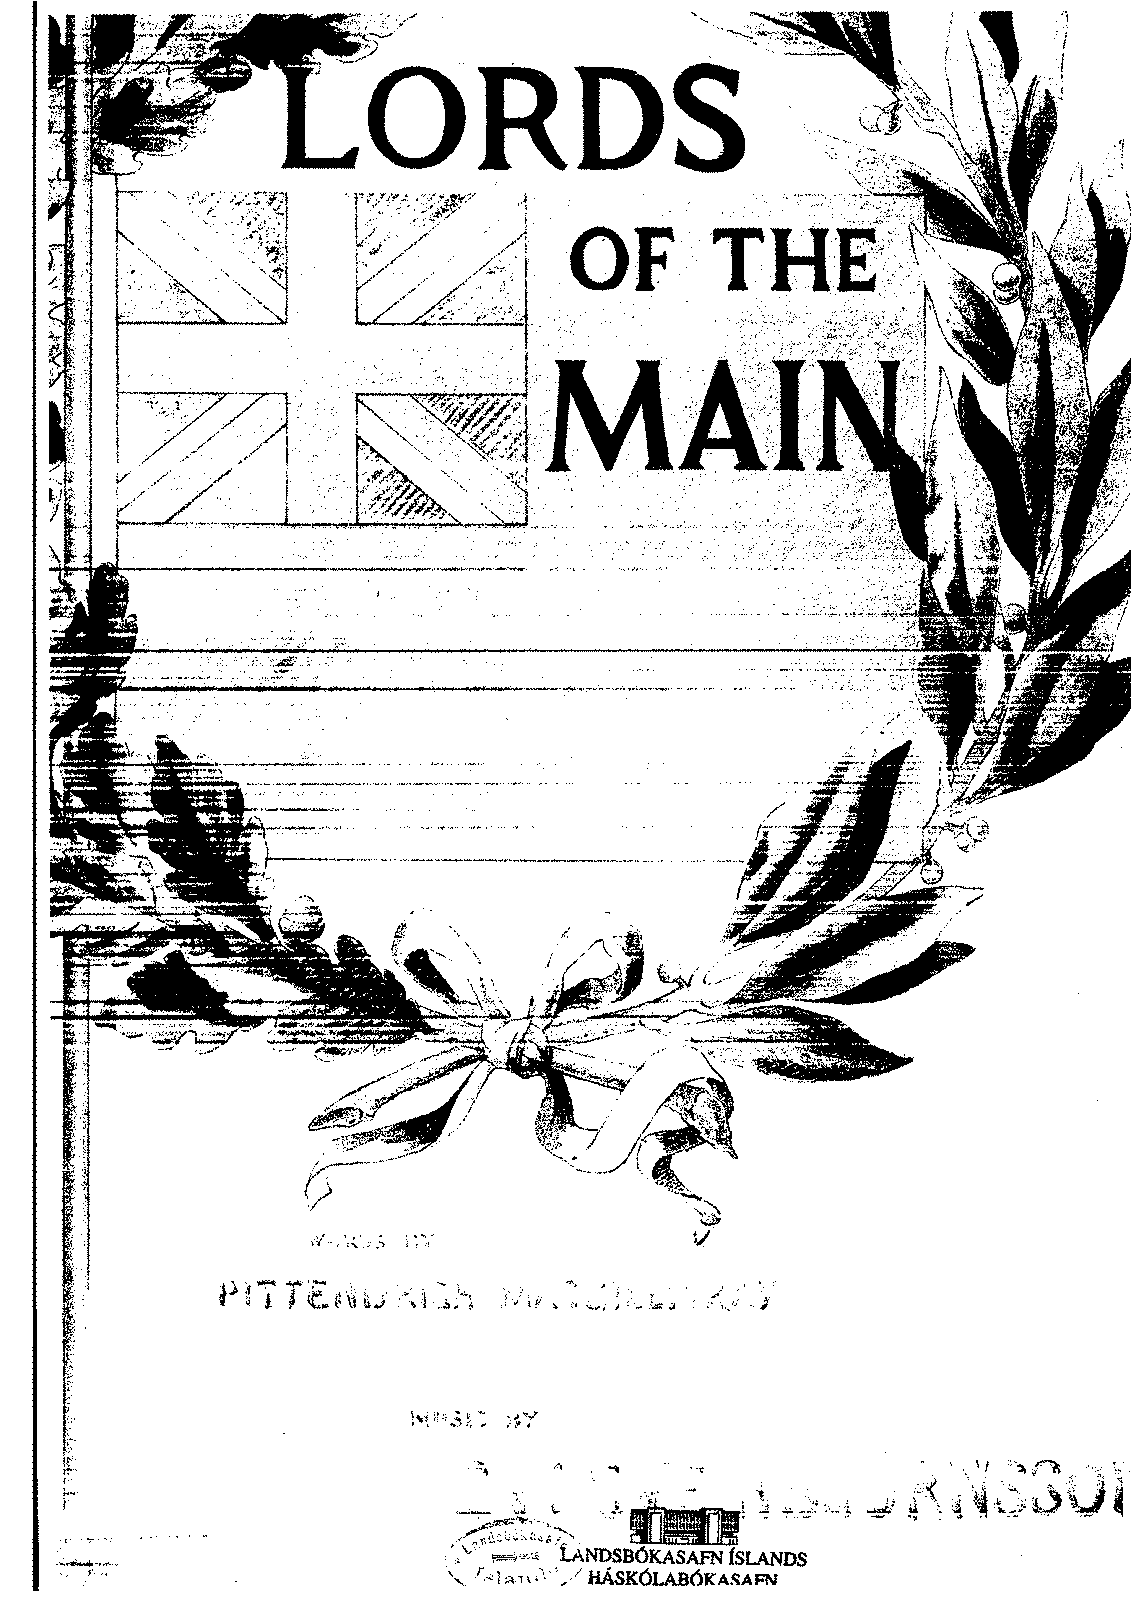 PMLP329495-Sveinbjornsson Lords of the Main.pdf